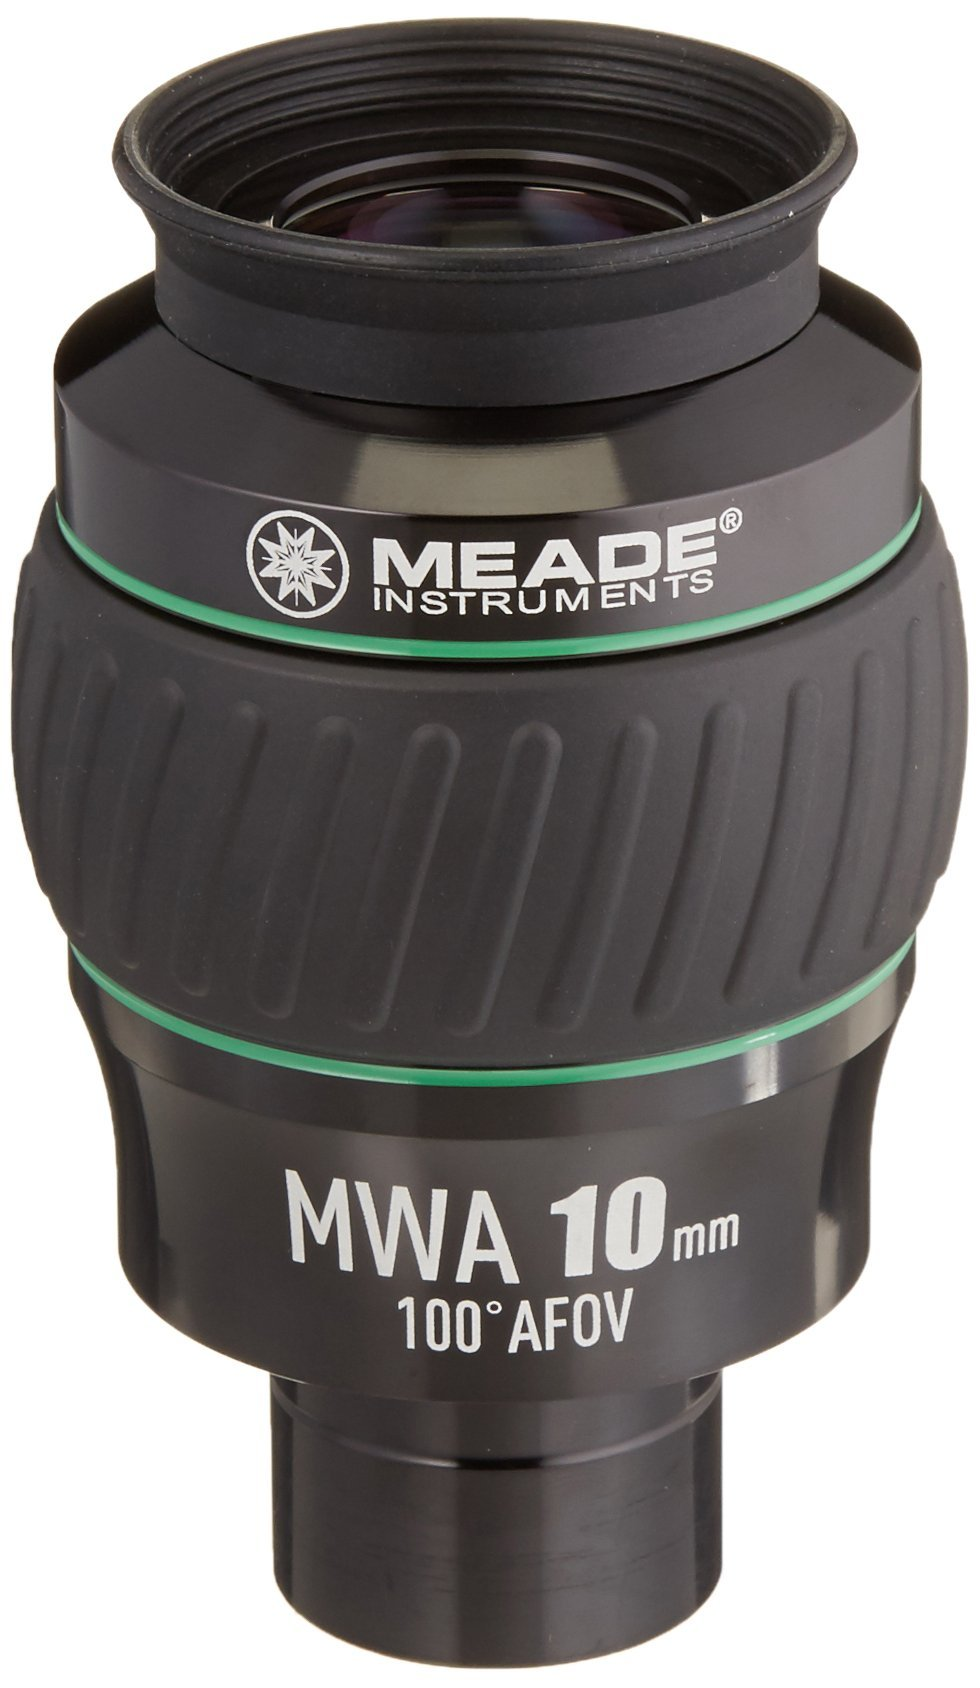 Meade Instruments 607016 Eyepiece, 100 Degree, MWA 10MM, 1.25-Inch (Black/Green) by Meade Instruments